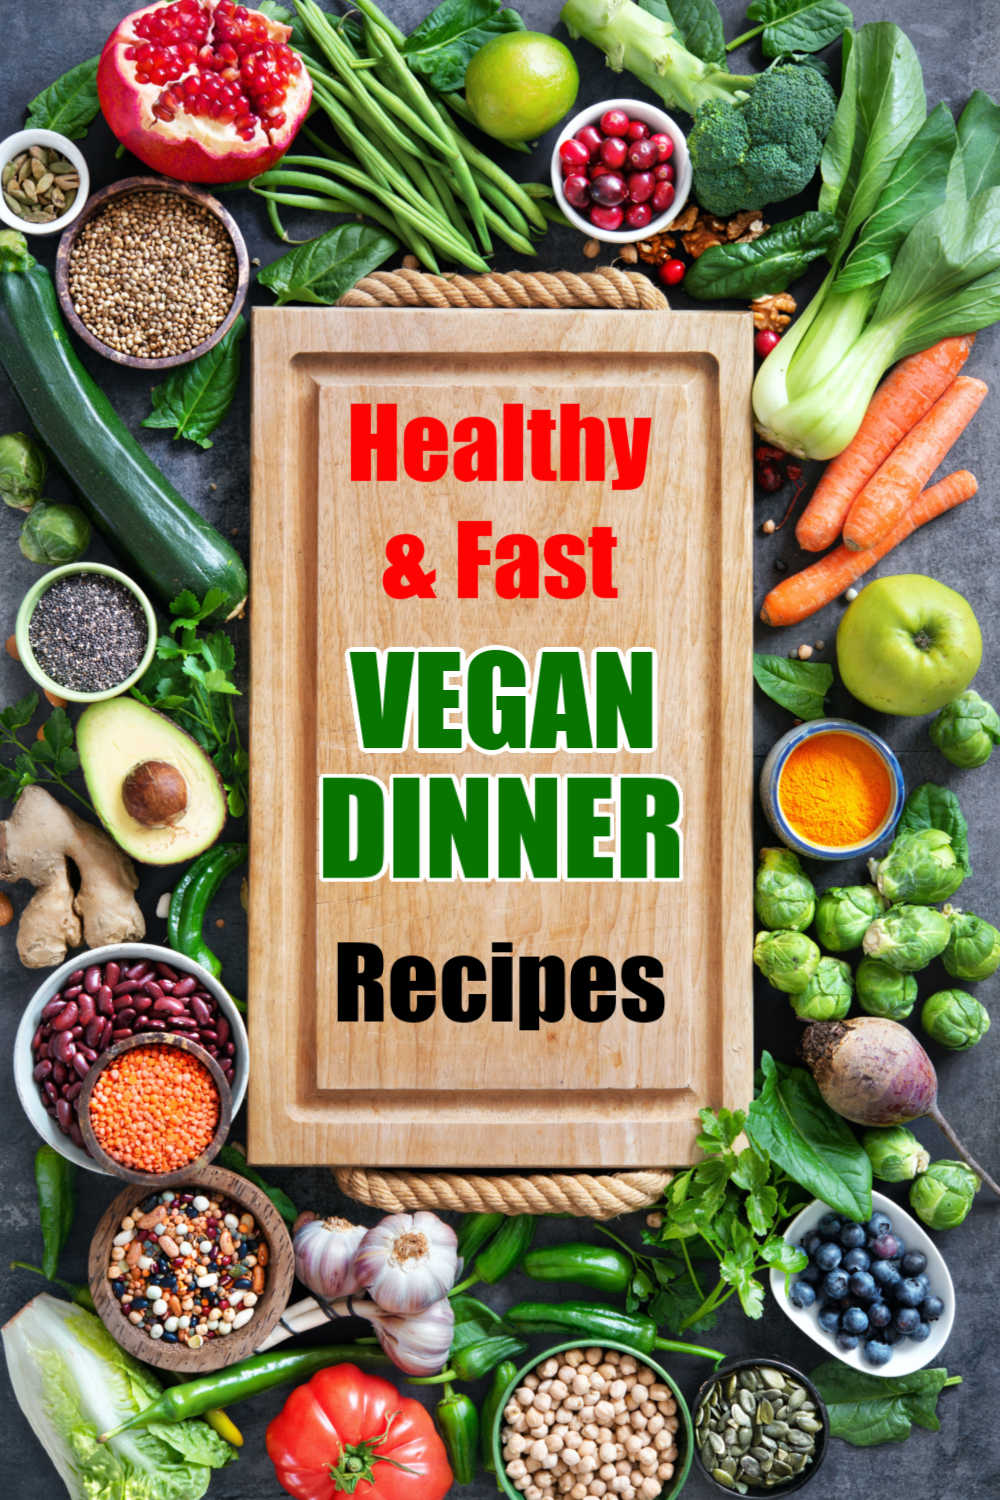 The Best Vegan Dinner Recipes - Eat Healthy and Be Creative!